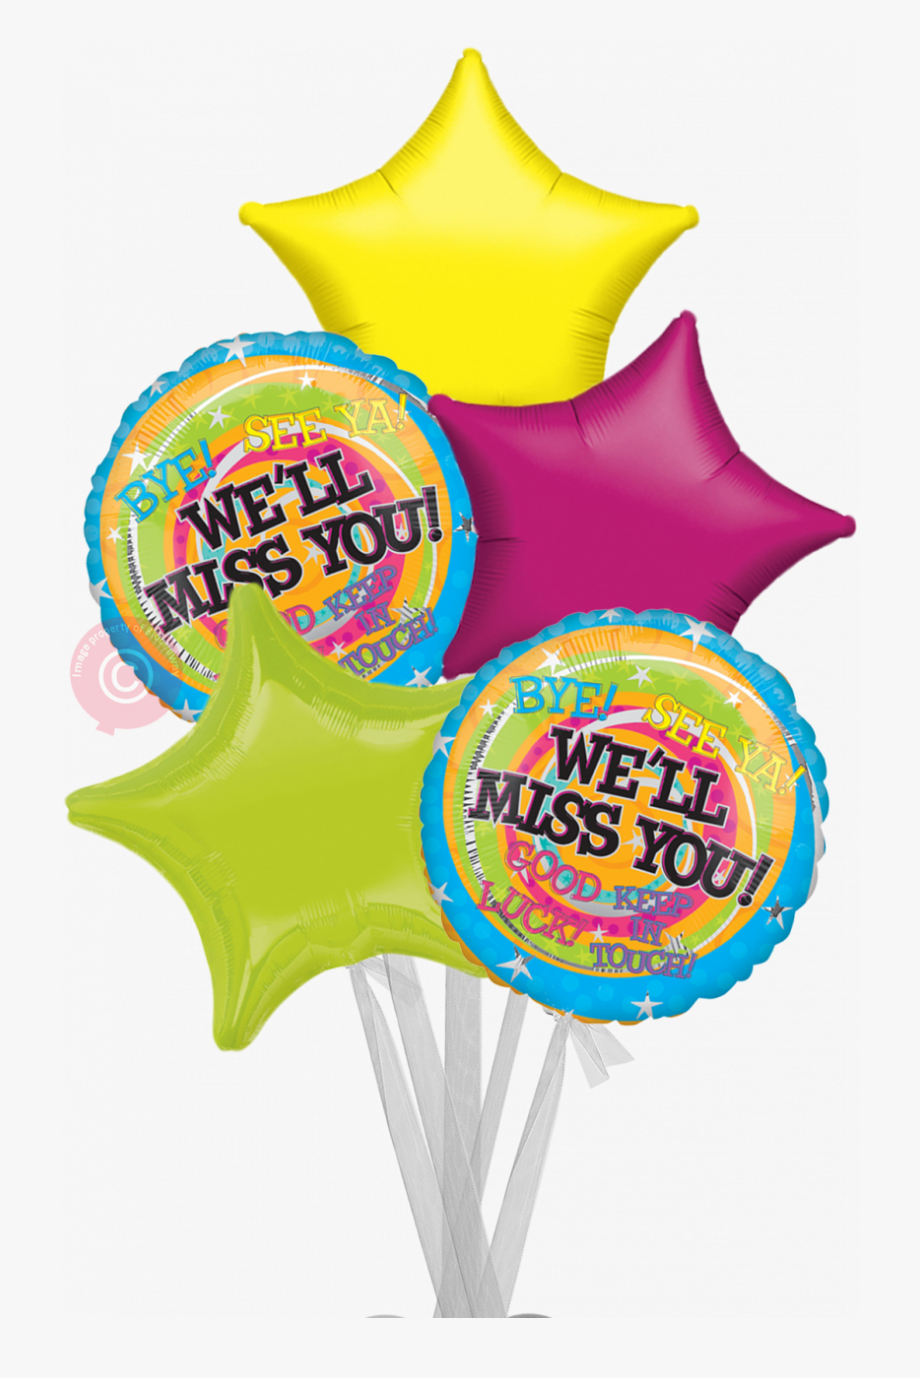 We Ll Miss You Clipart , Transparent Cartoon, Free Cliparts.